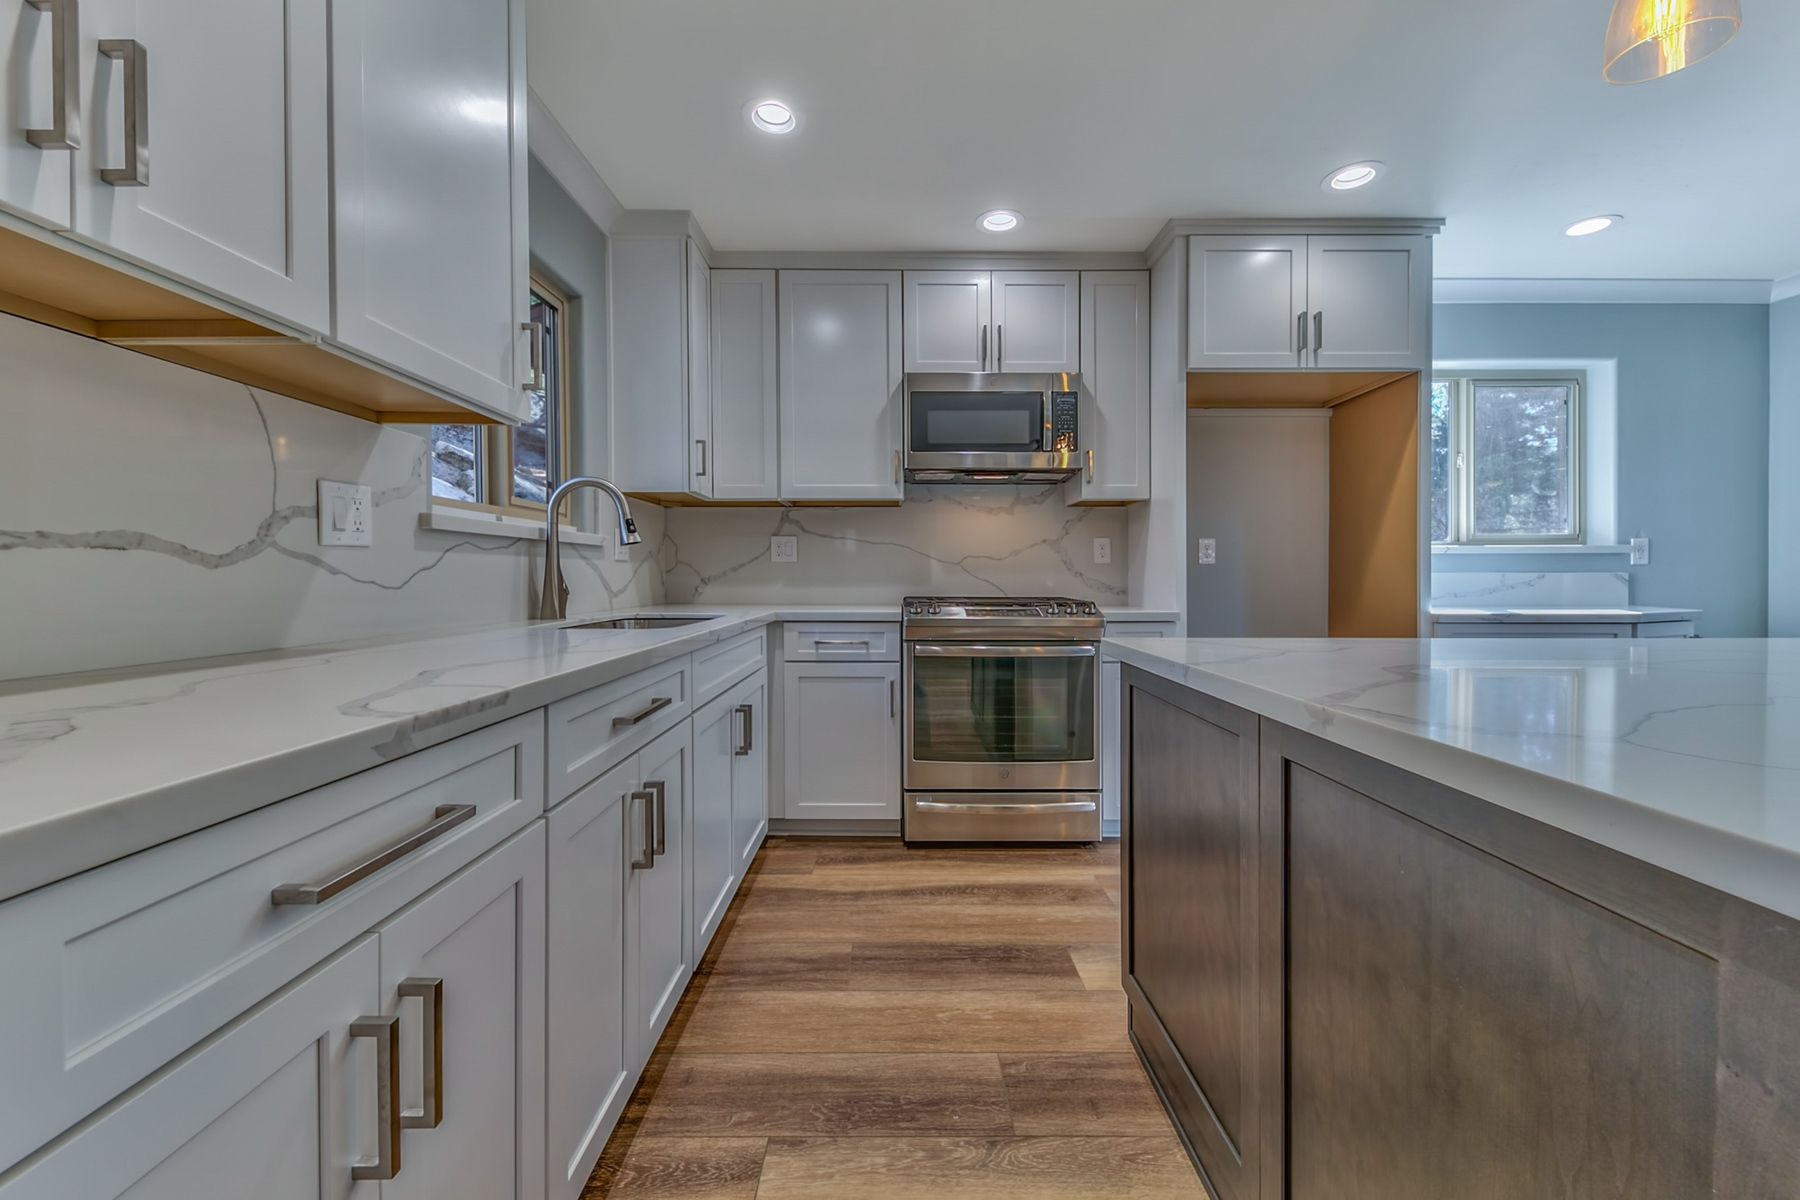 Additional photo for property listing at 2165 Pinewood Drive, South Lake Tahoe, Ca 96150 2165 Pinewood Drive South Lake Tahoe, California 96150 United States